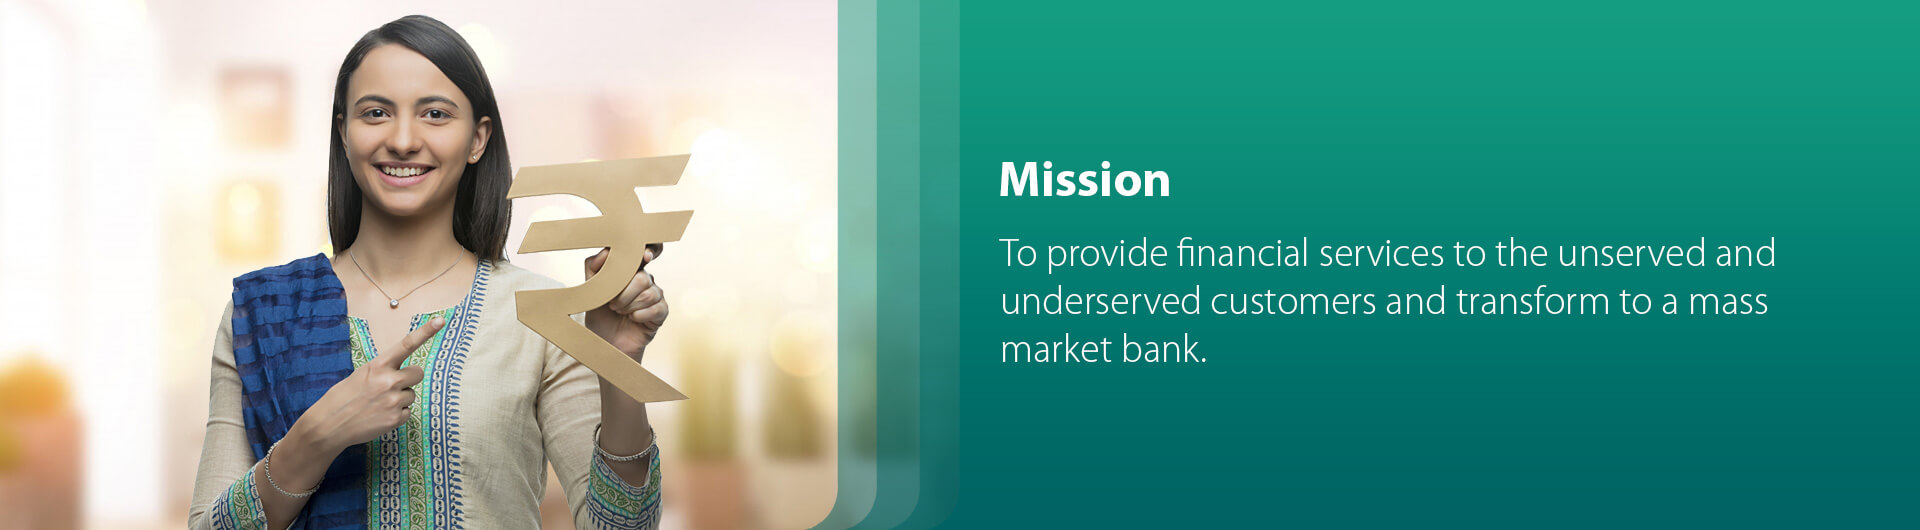 mission to provide financial services